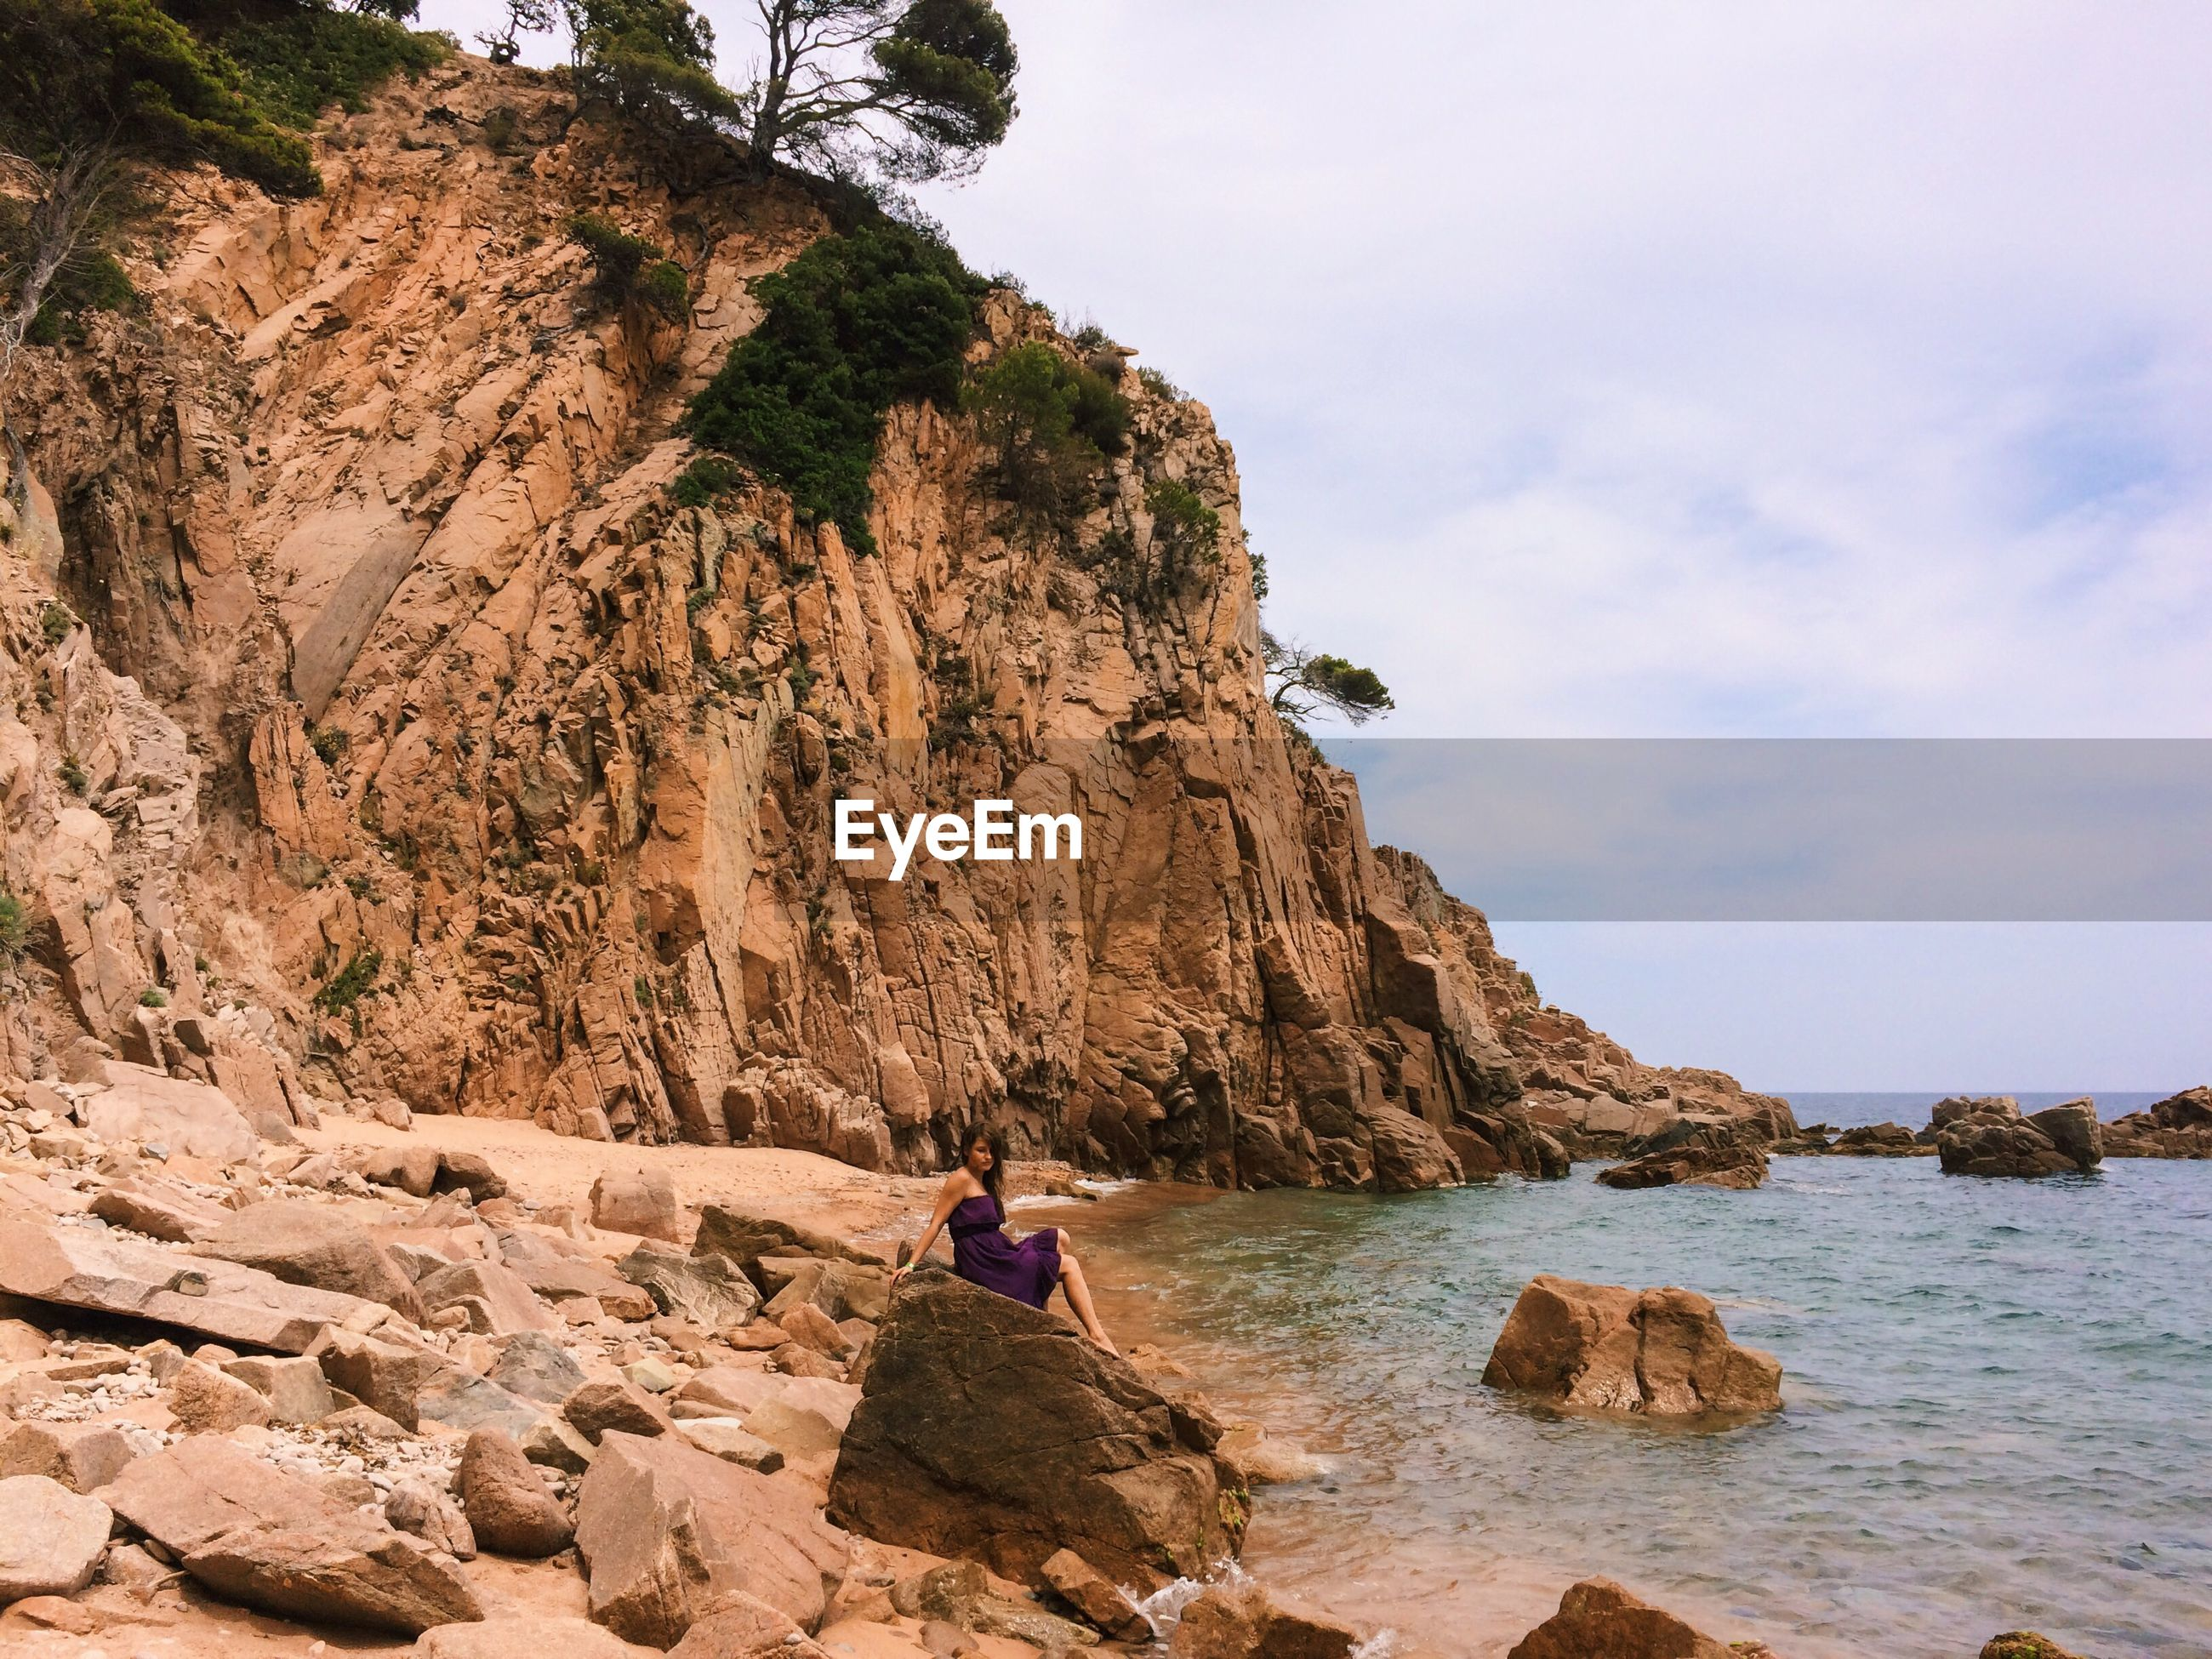 Woman sitting on rock at seaside against cloudy sky